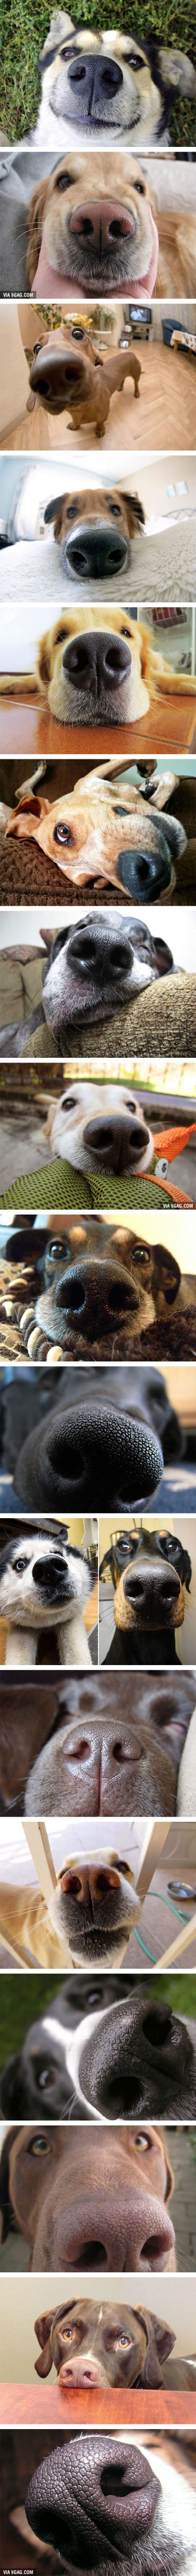 Unbearably adorable dogs nose close-up